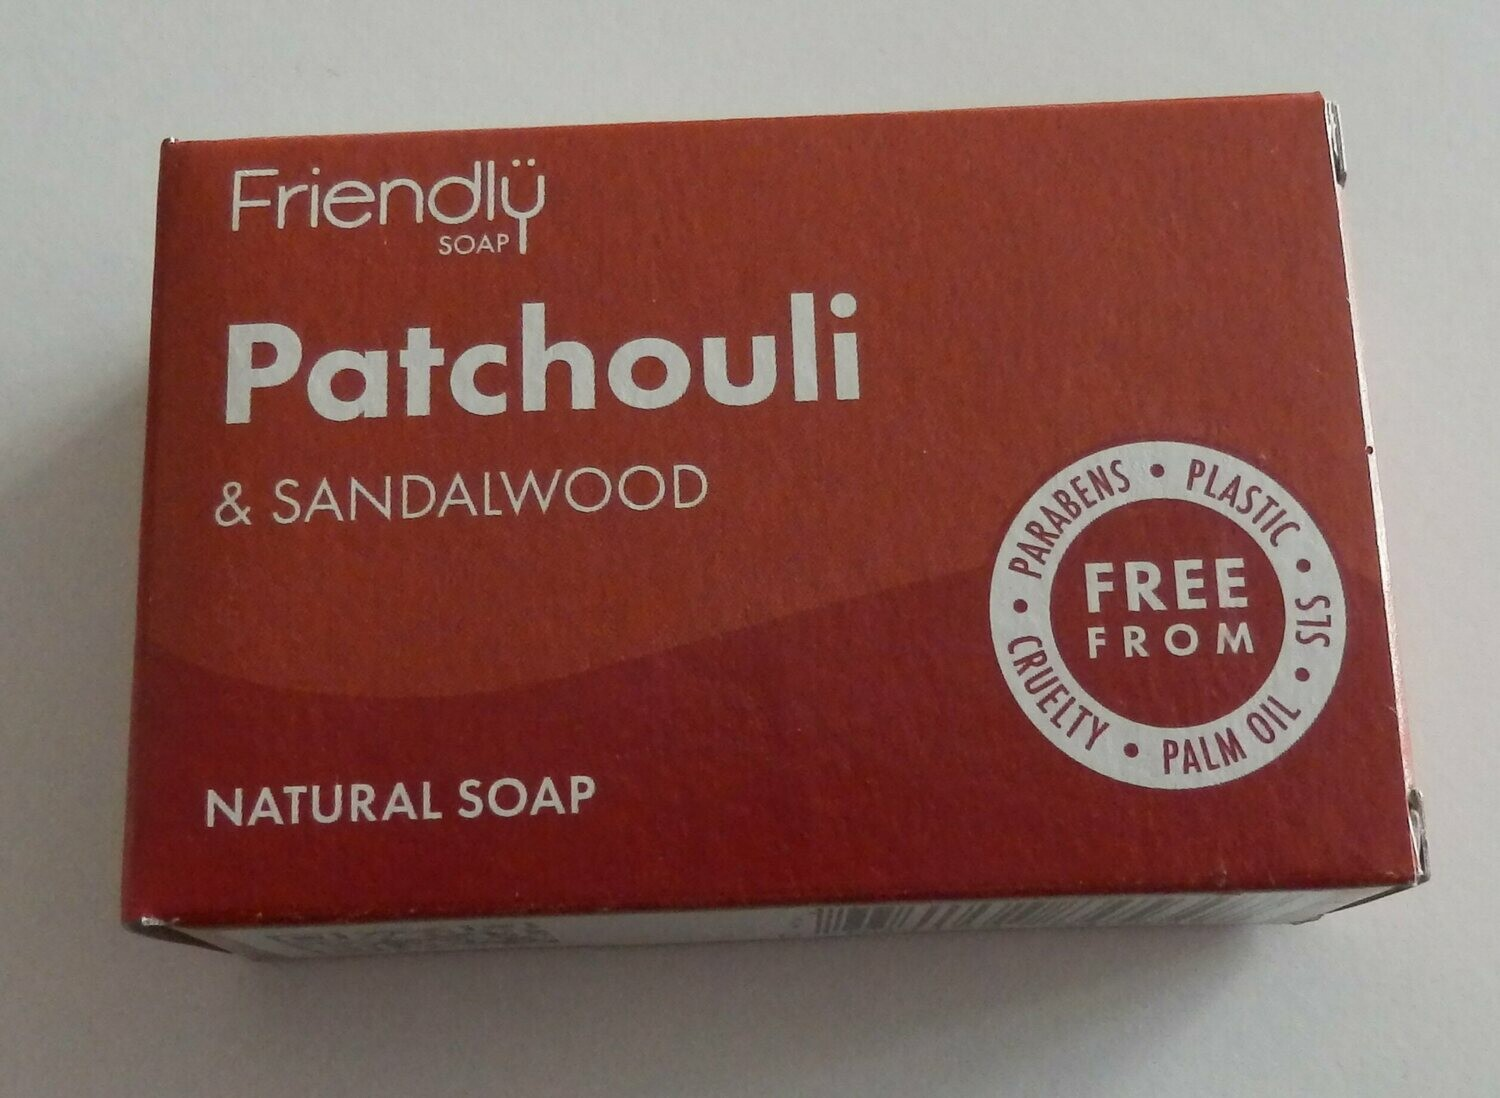 Patchouli & Sandalwood Soap